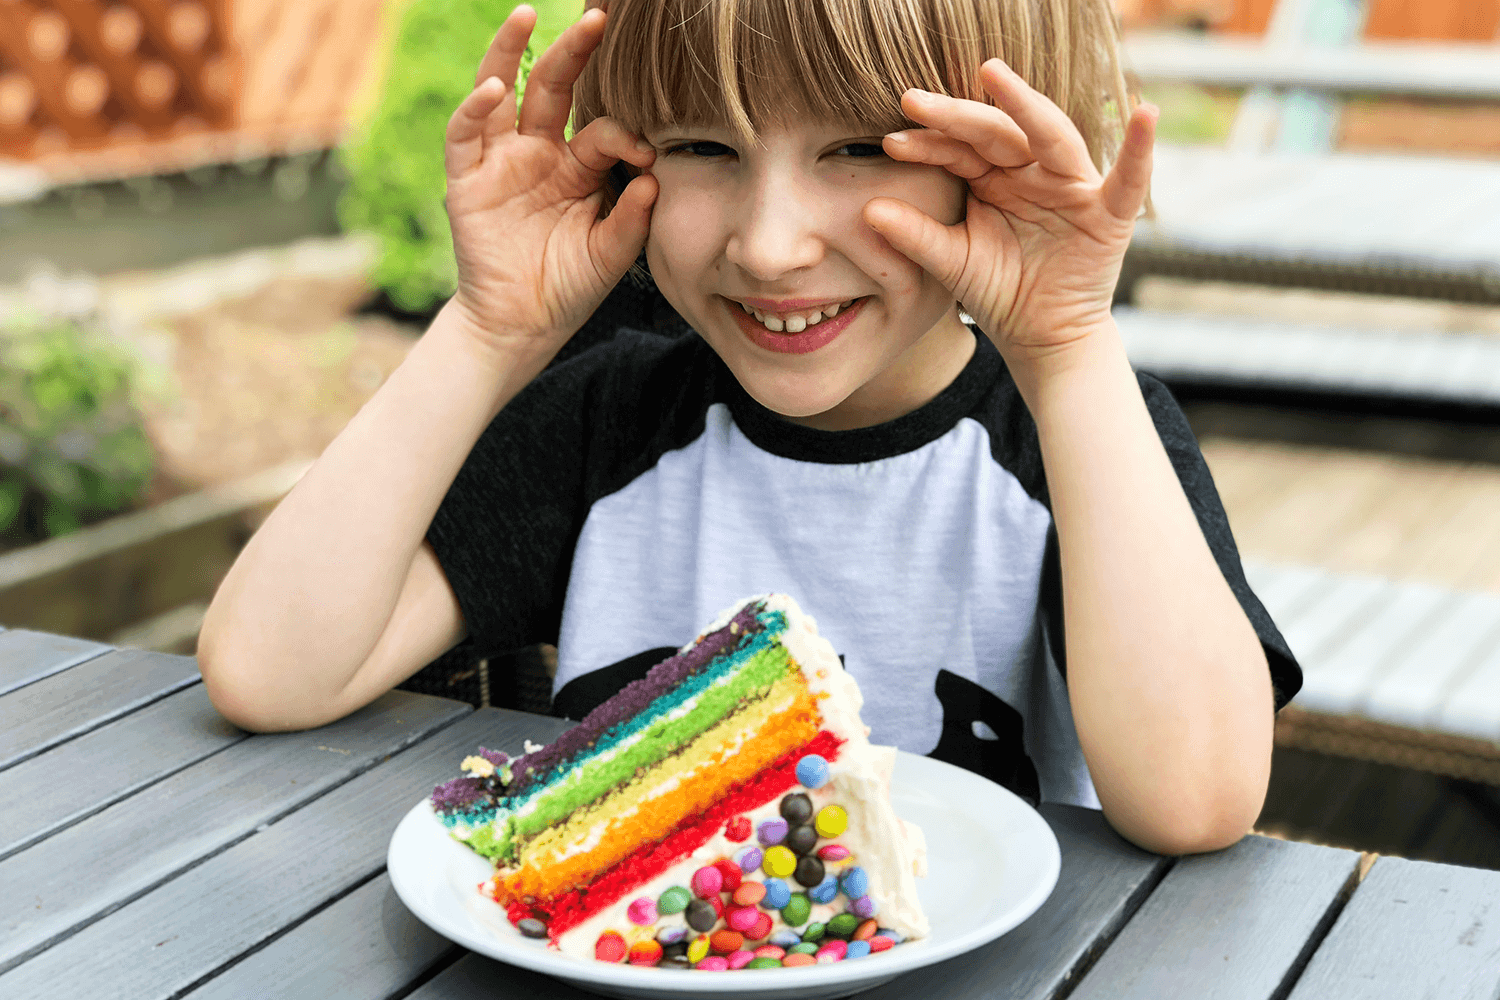 Toby with his enormous slice of rainbow cake